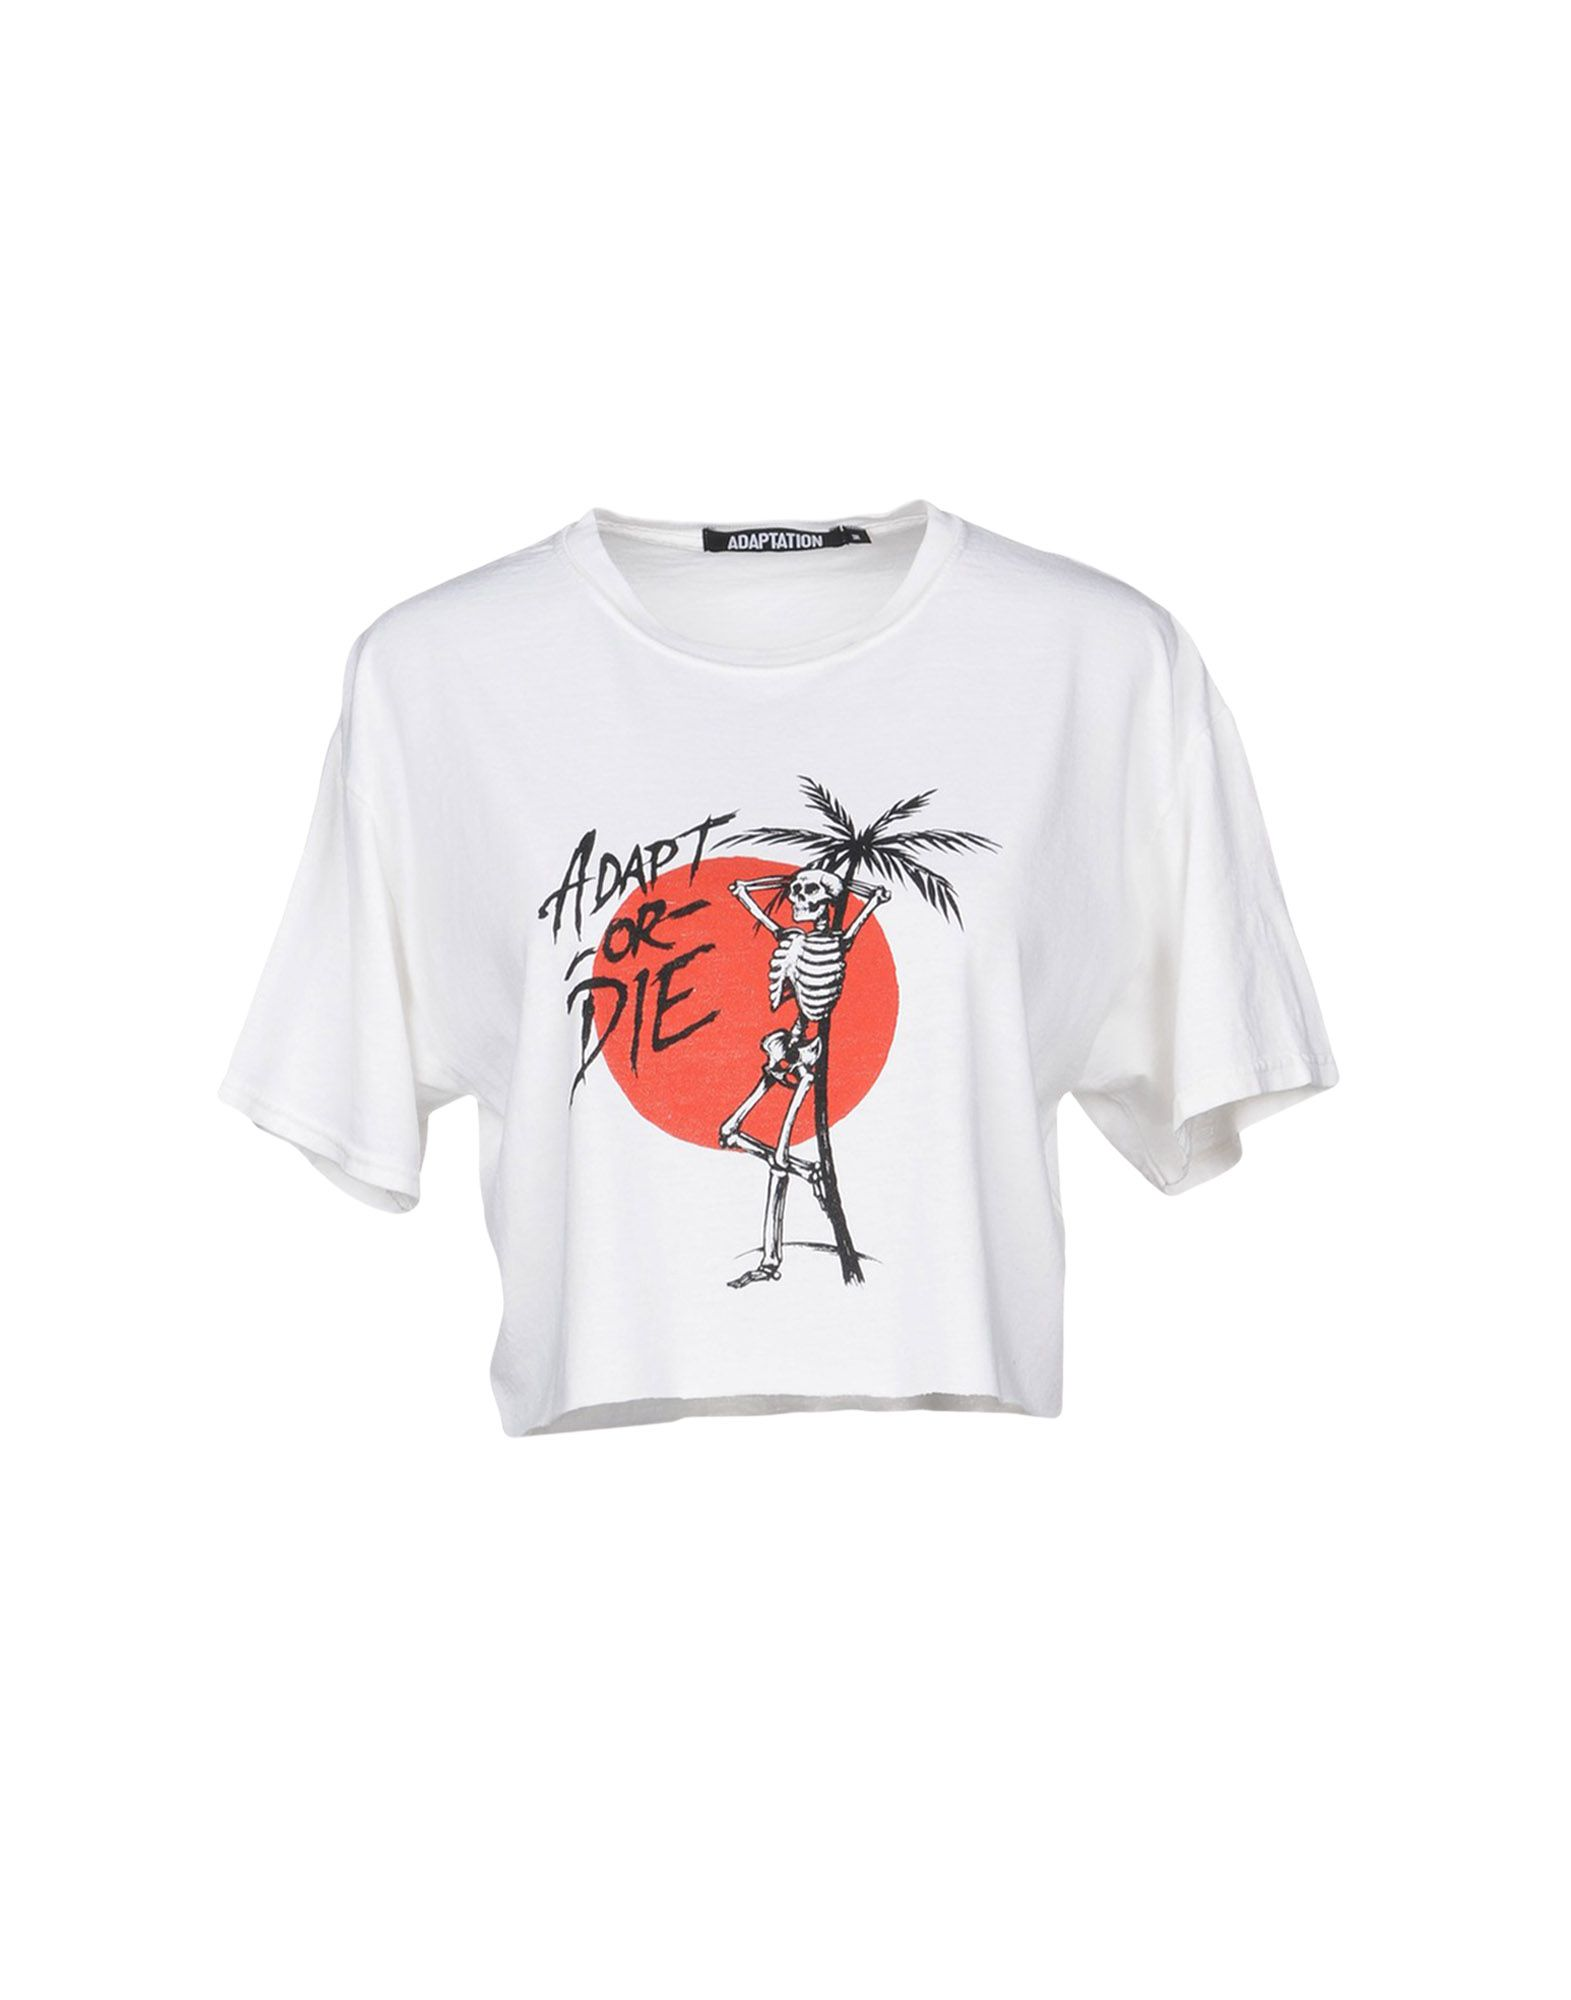 Adaptation Cropped T-Shirt In White